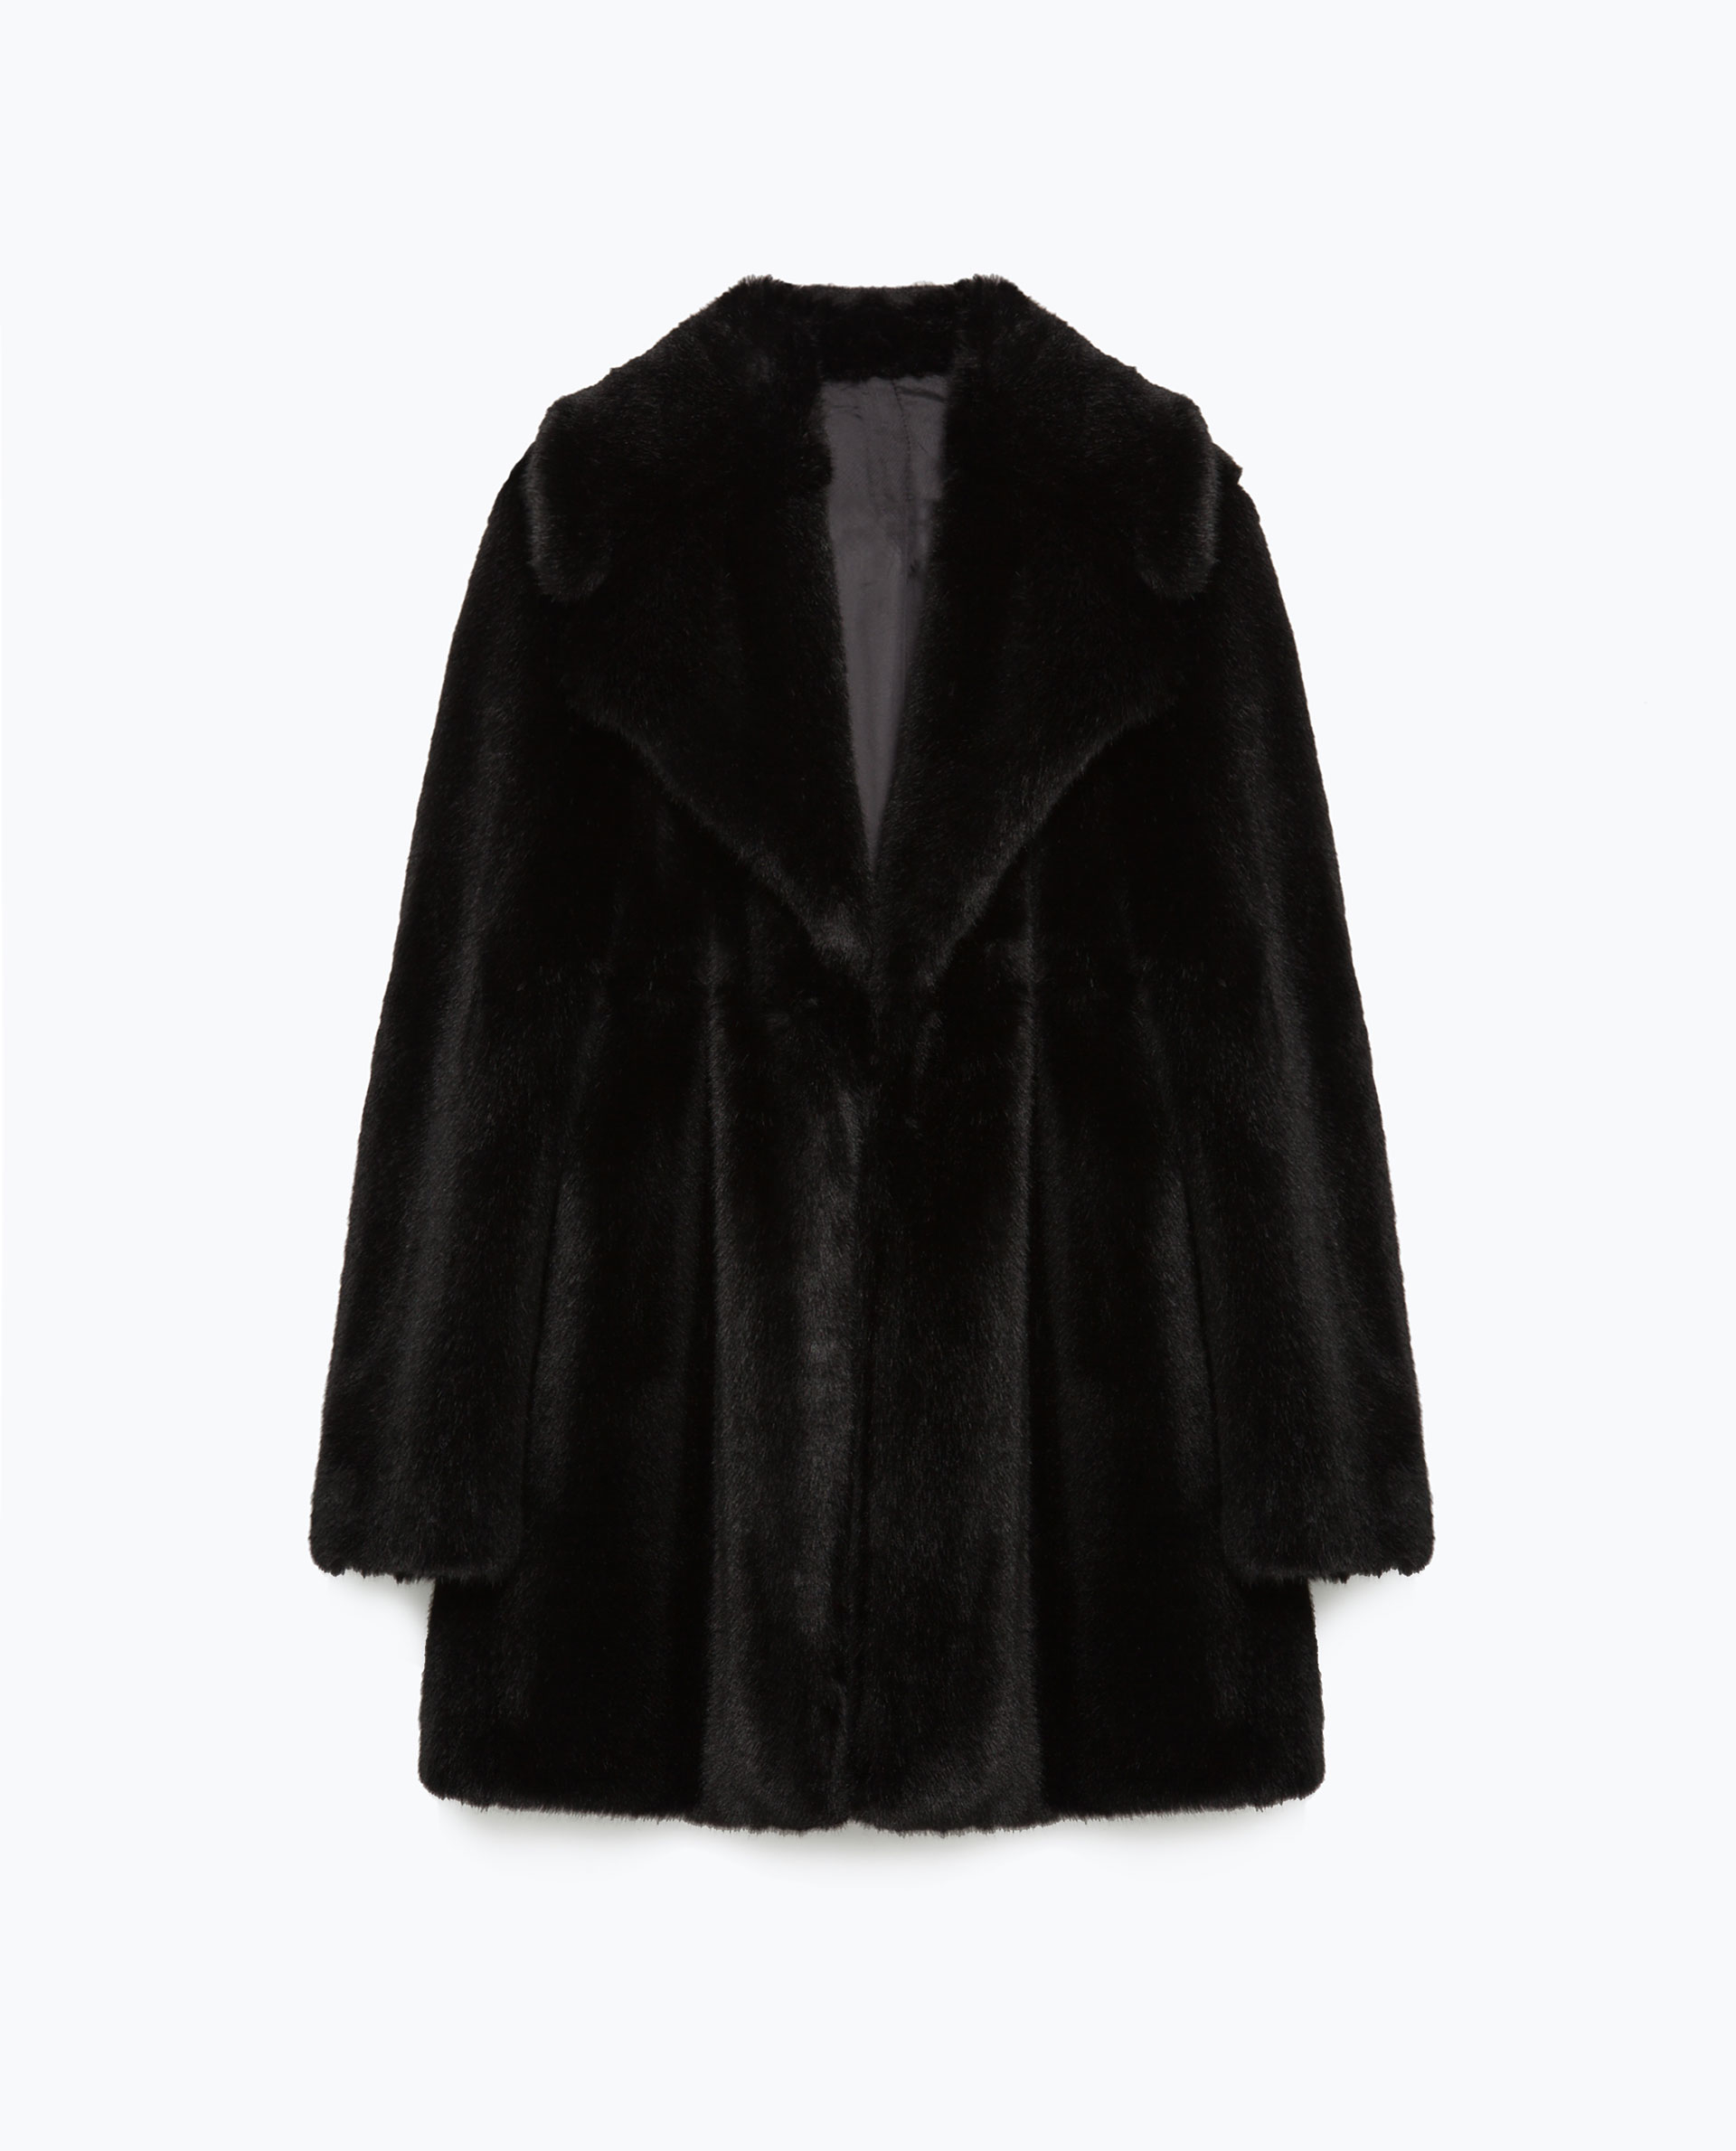 Black Faux Fur Coat Photo Album - Reikian